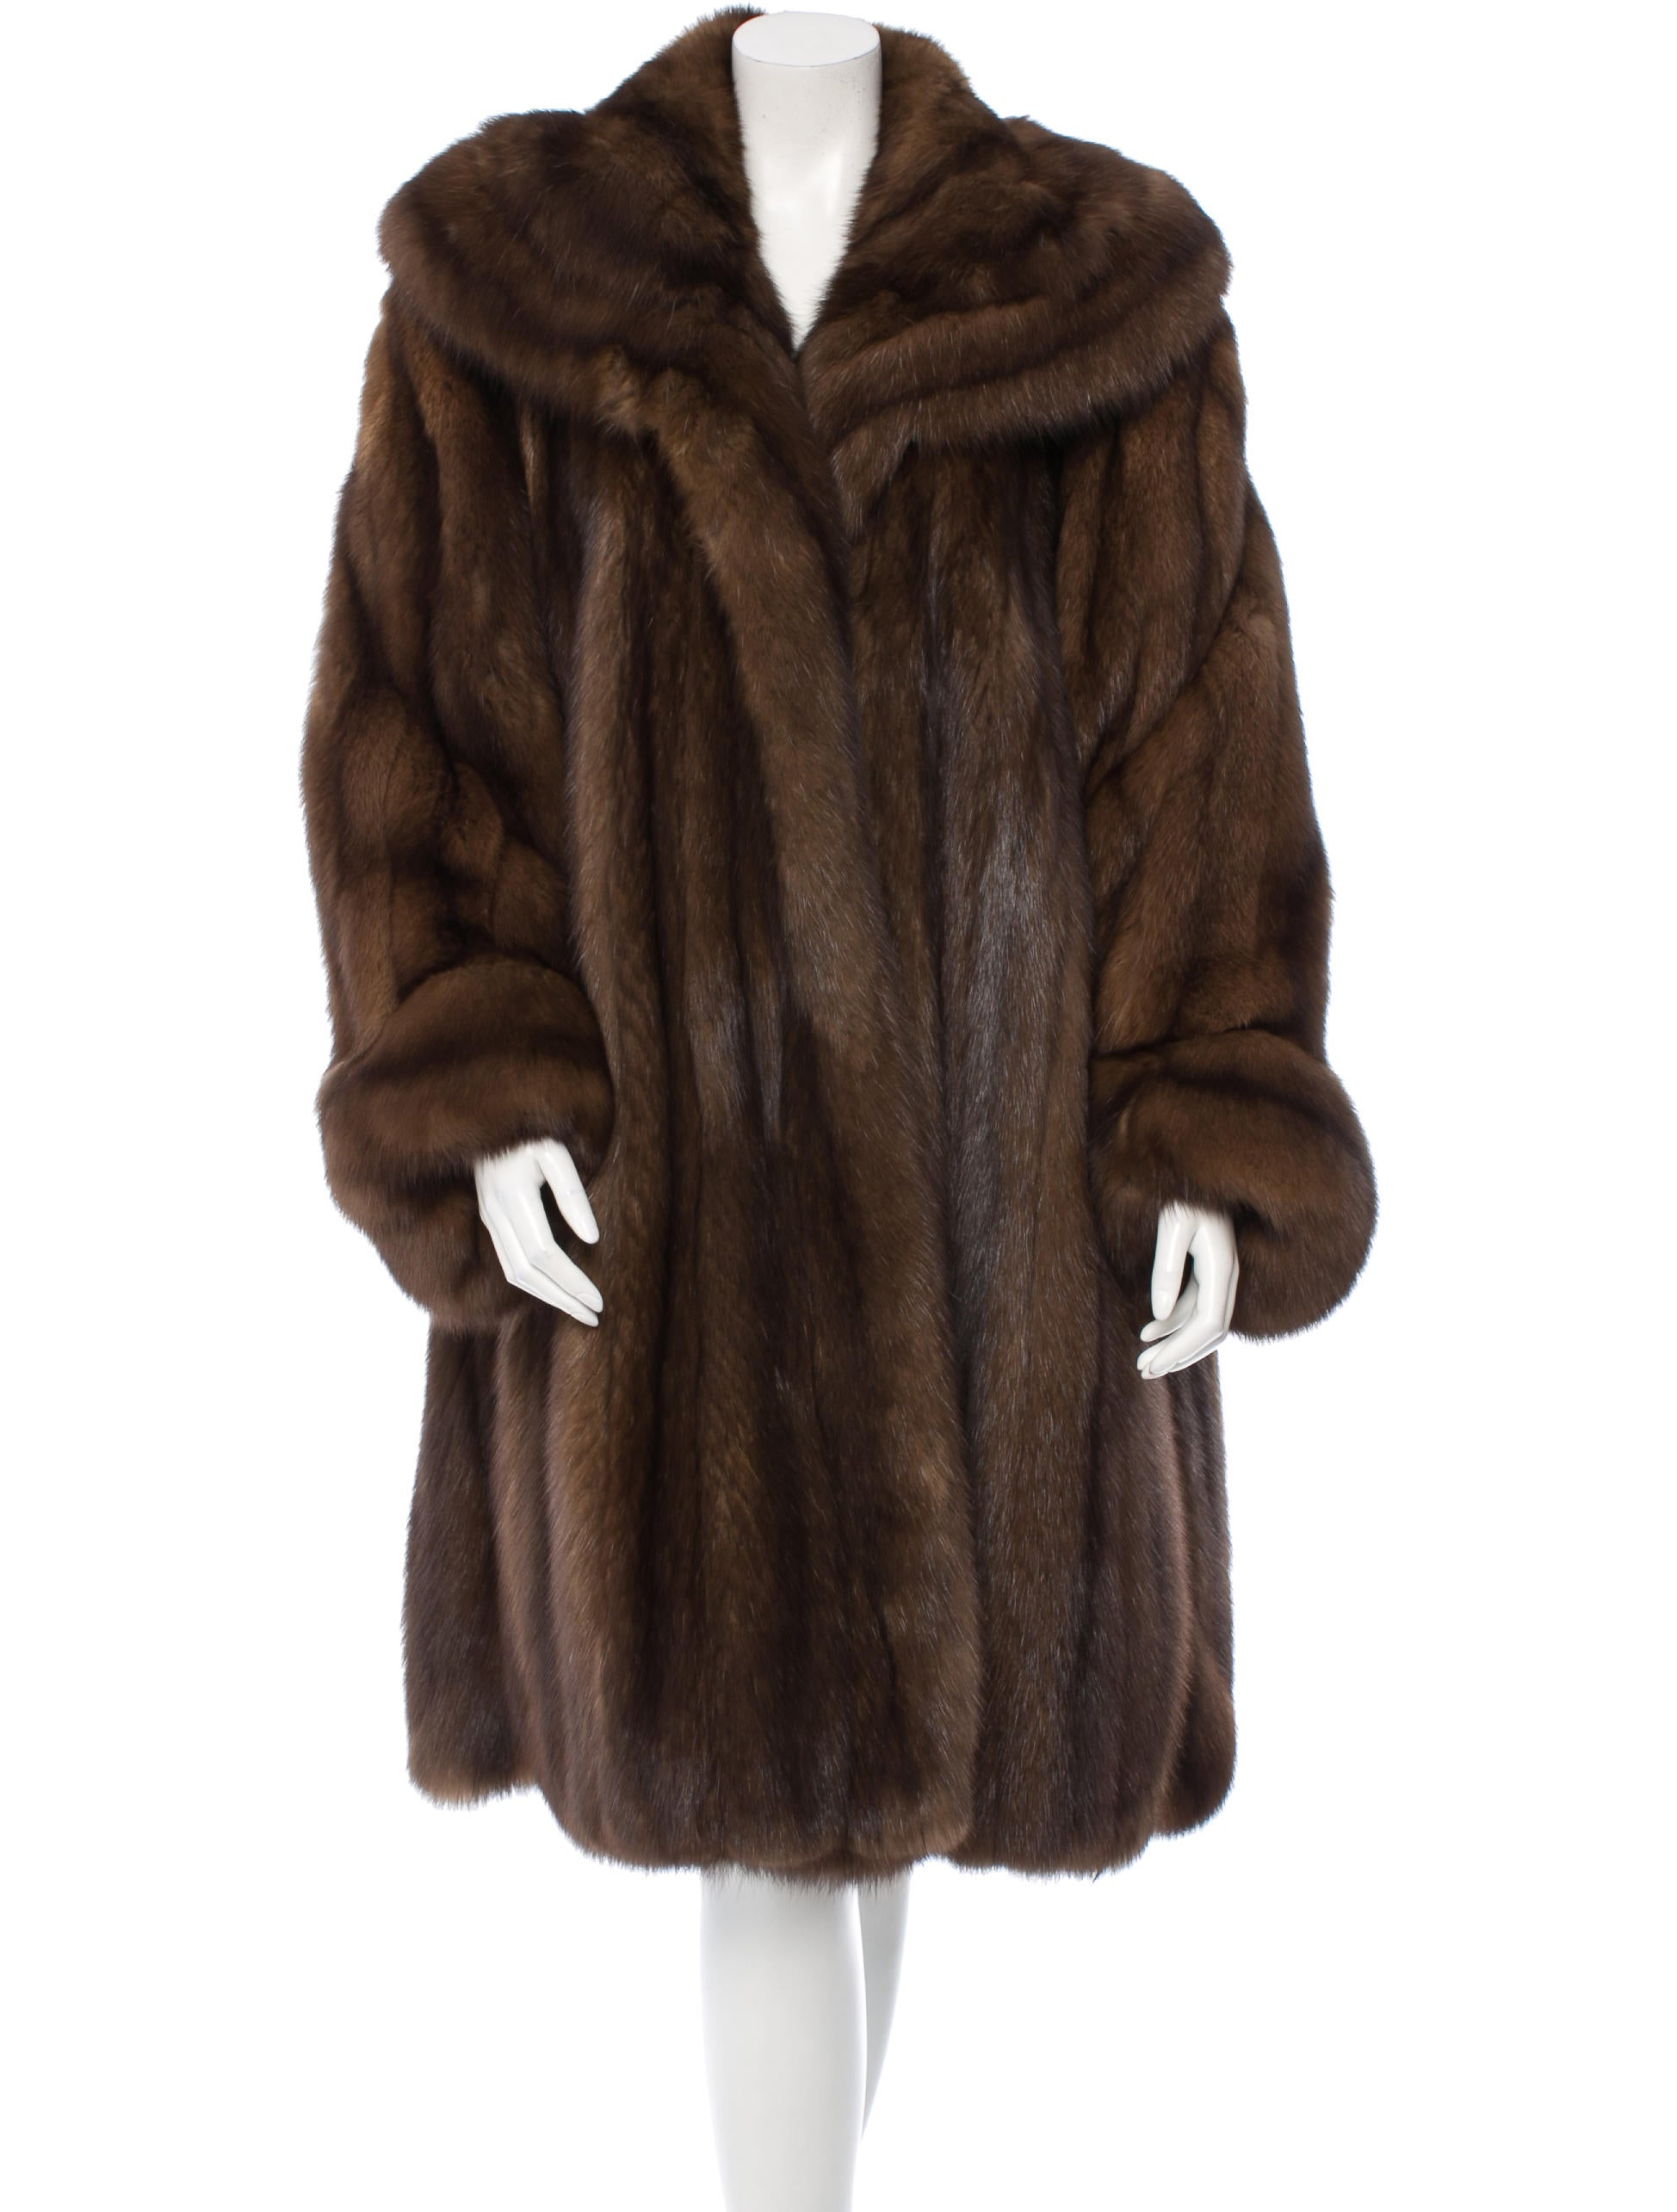 Birger Christensen Sable Fur Coat - Clothing - BIRRH20004 | The ... for Sable Fur Cape  111bof